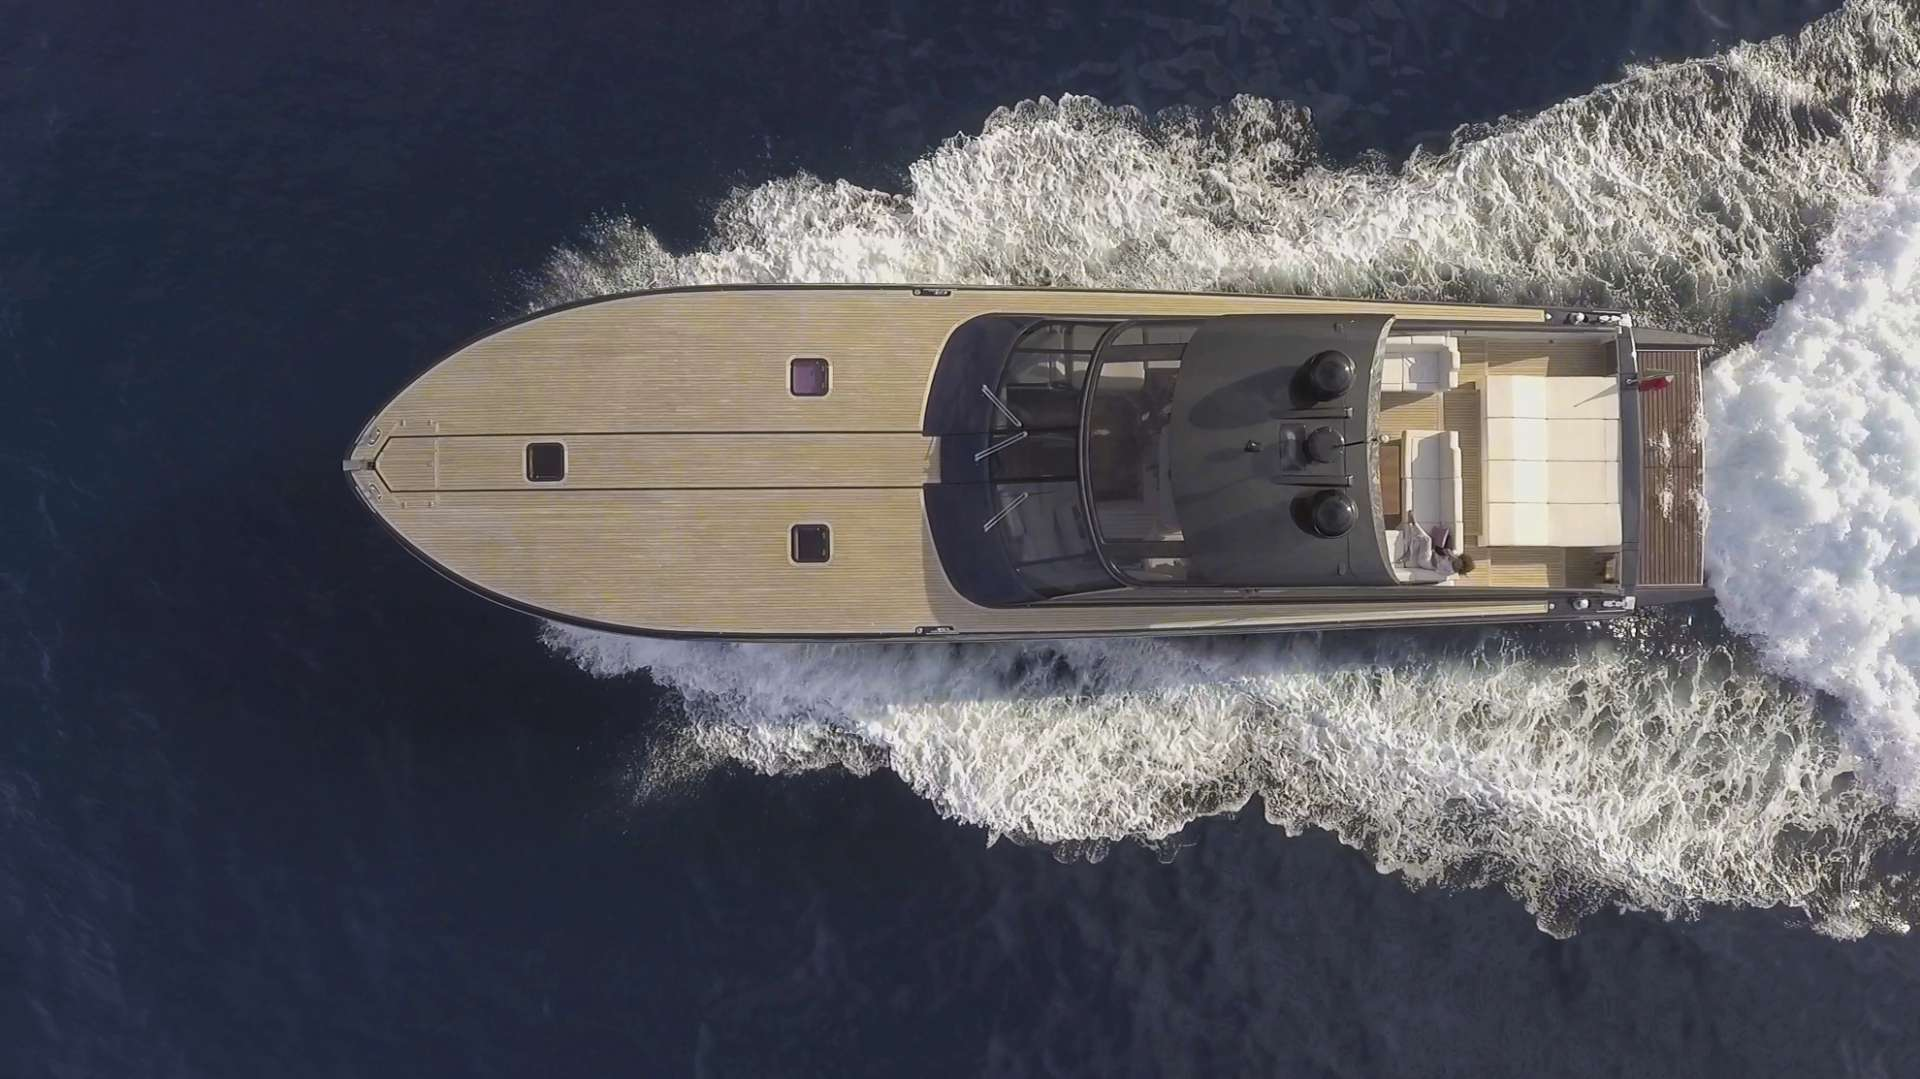 Power Yacht 'Power', 6 PAX,  Crew, 77.00 Ft, 23.00 Meters, Built 2013, Itama, Refit Year